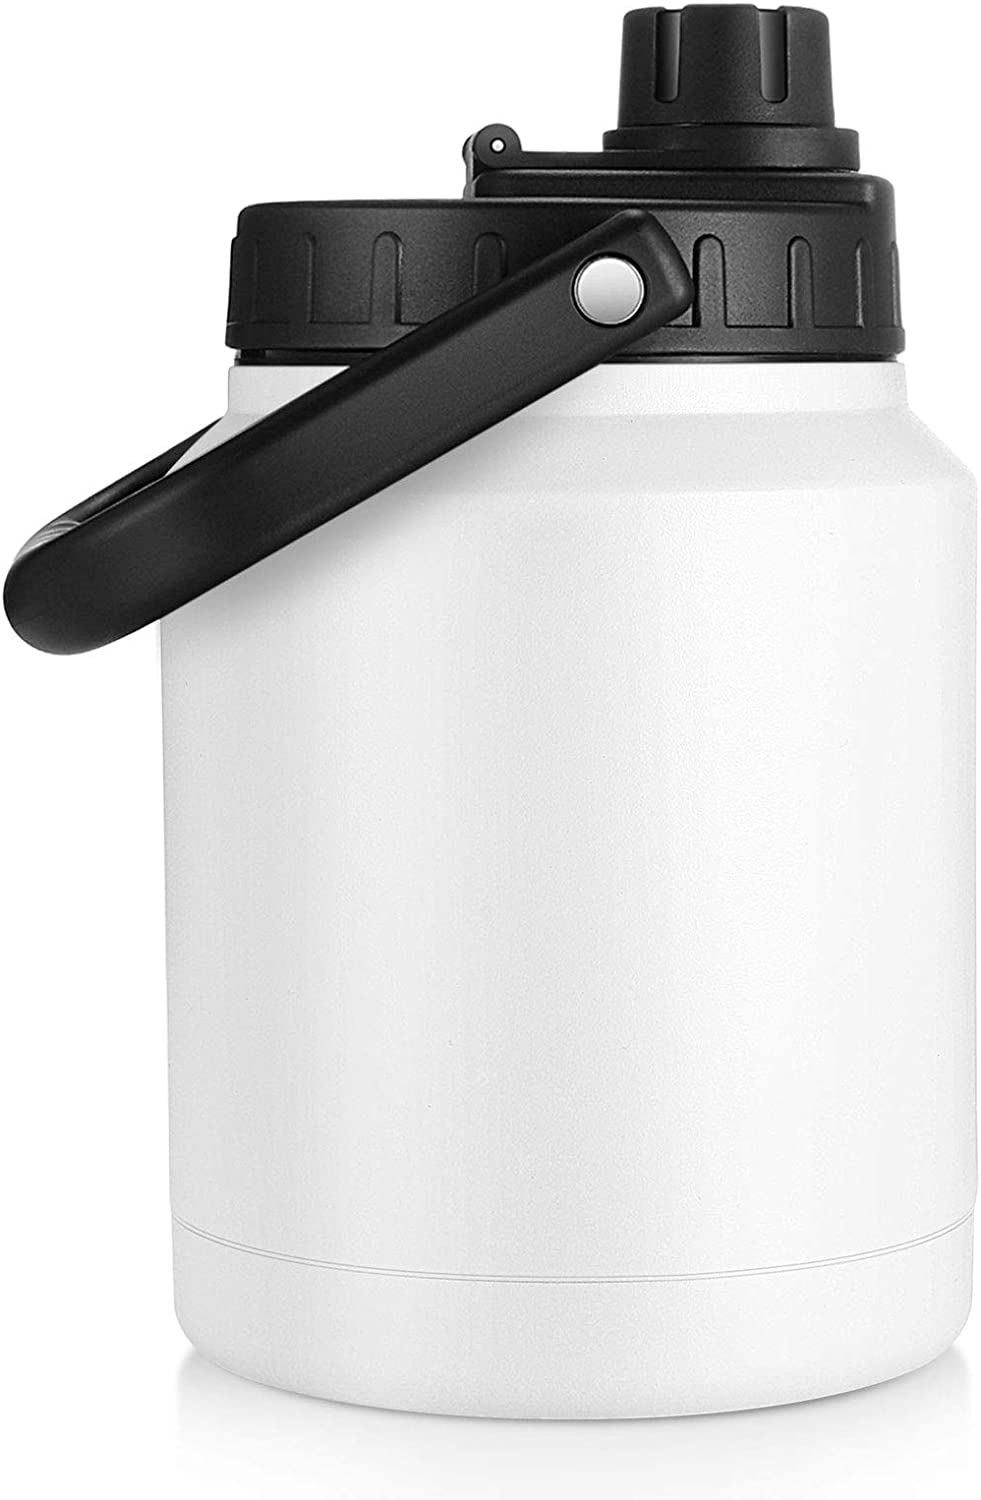 Sursip 64 Oz Vacuum Insulated Water Bottle,Half Gallon Stainless Steel Double Walled Water Jug,18/8 Food-Grade Stainless Steel Insulated Water Bottle for Hot and Cold Drinks Water Flask,White